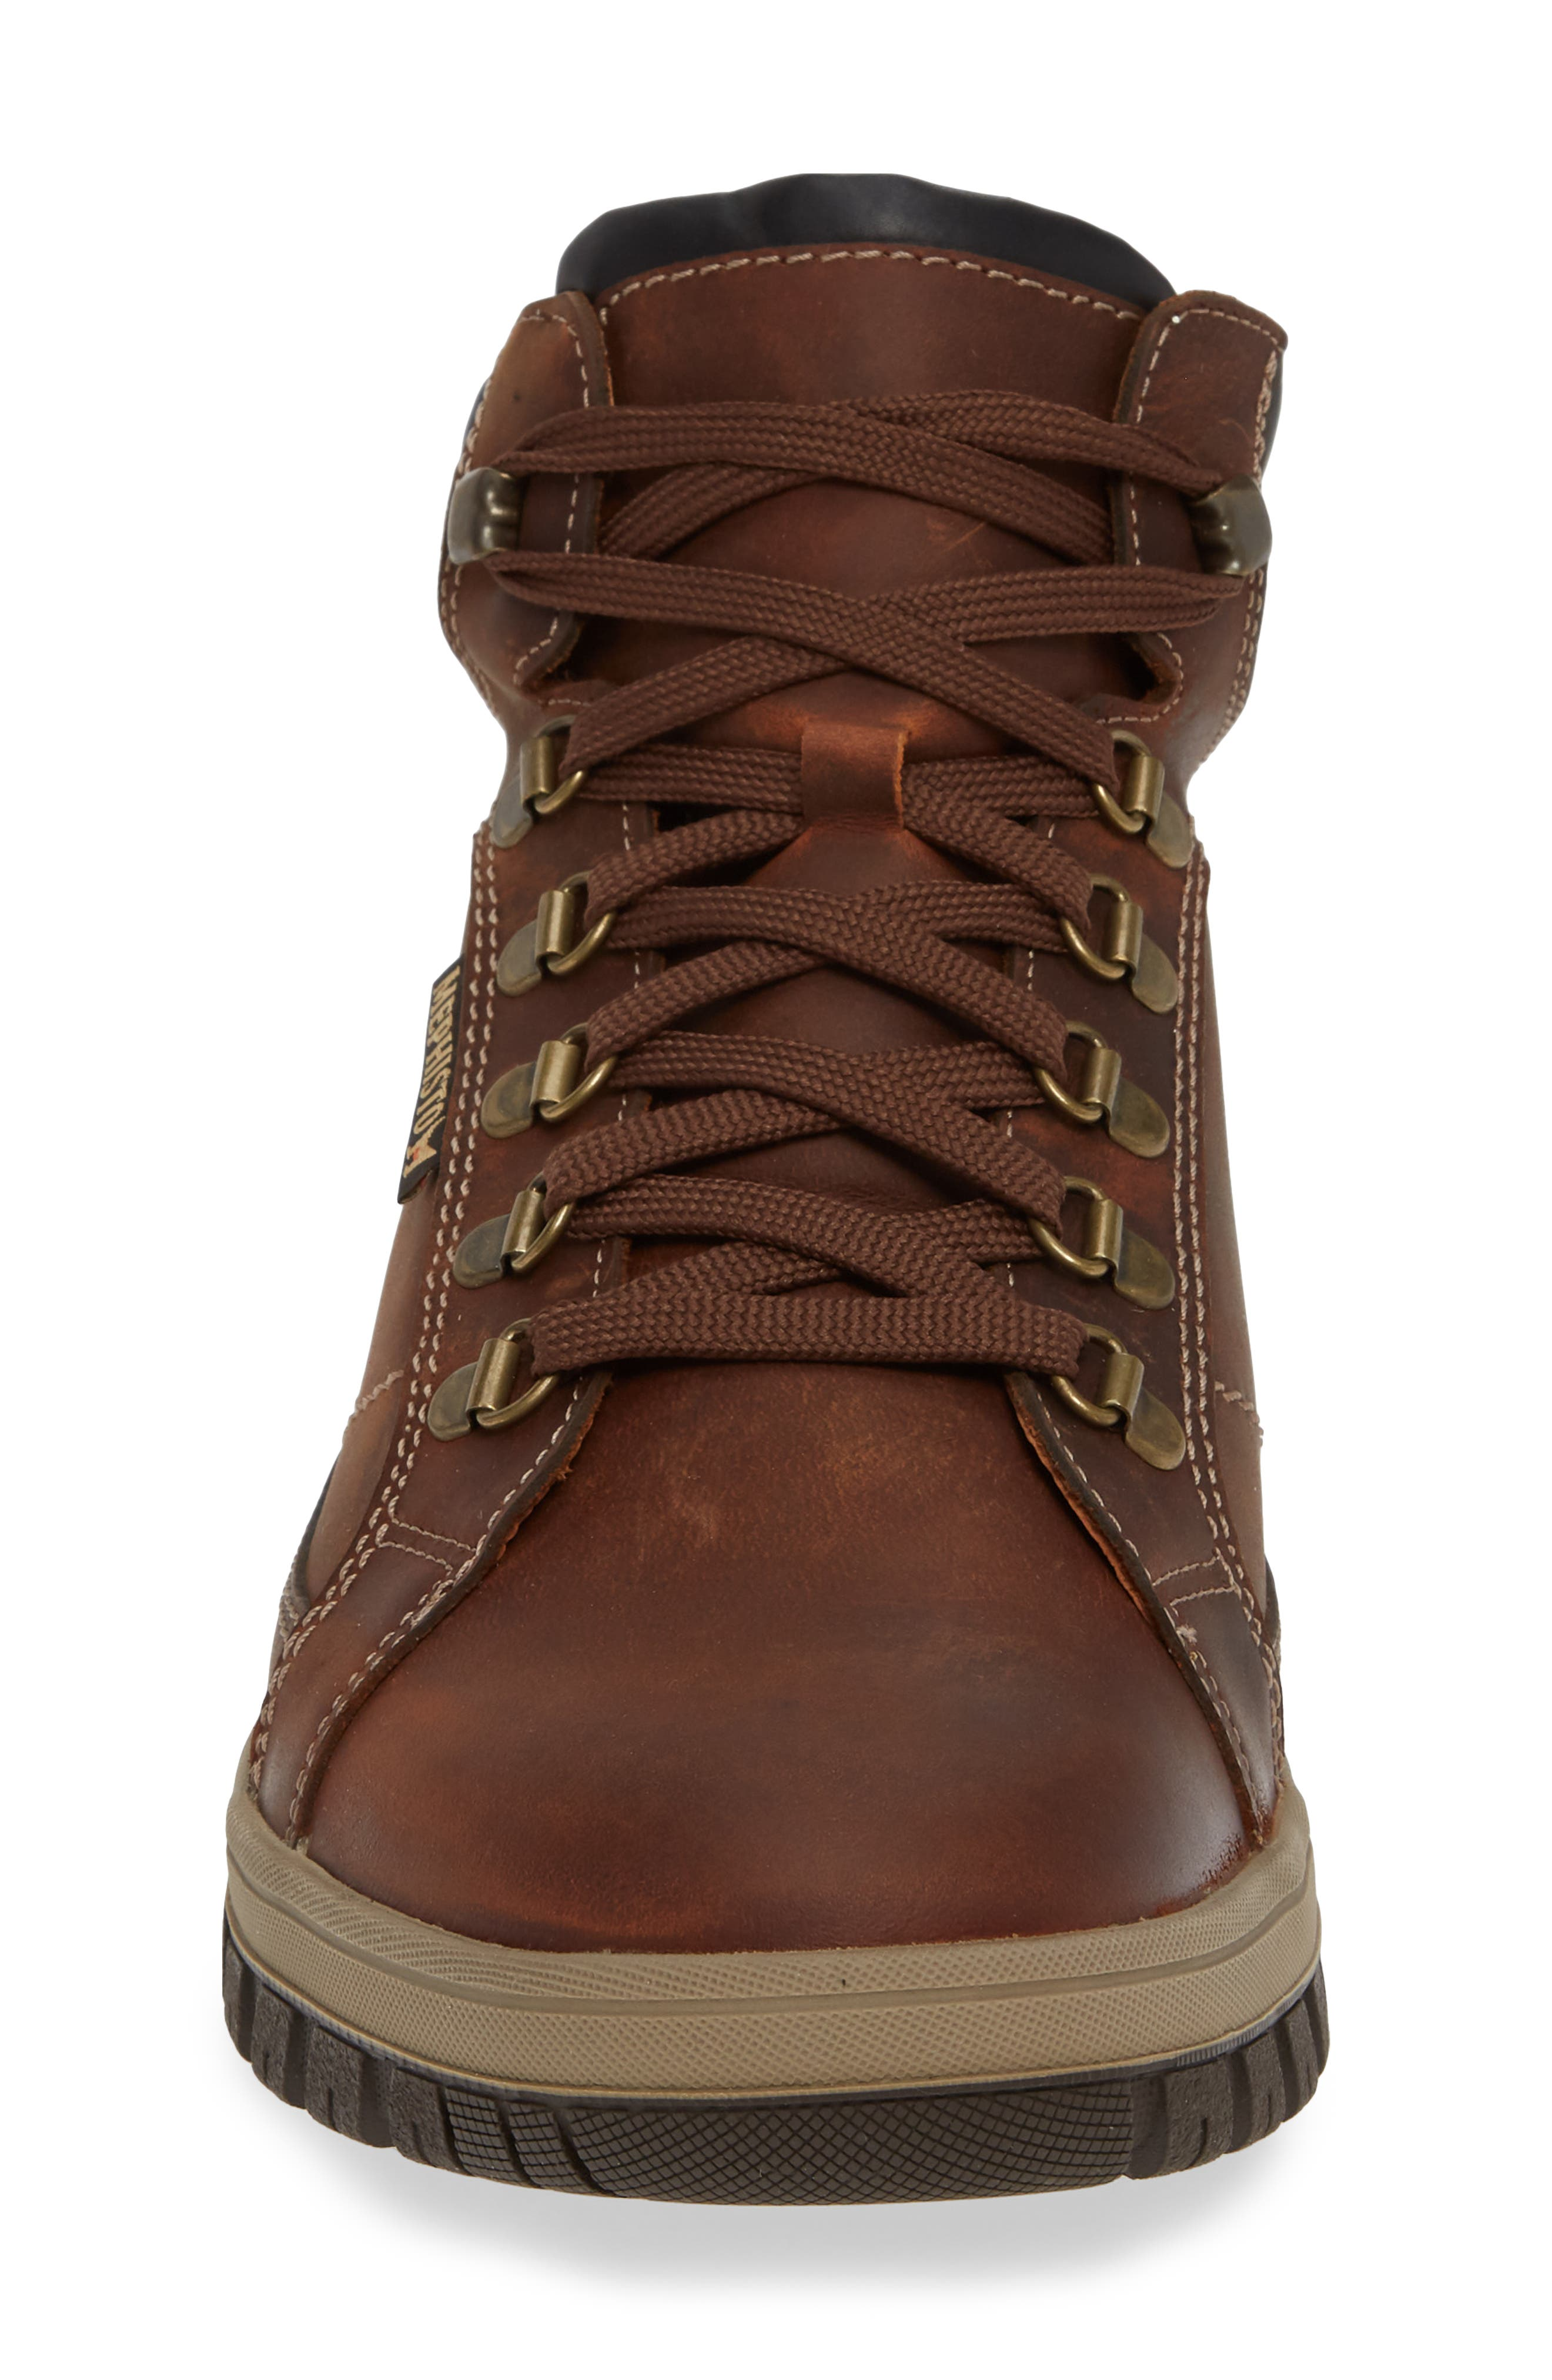 MEPHISTO, Pitt Mid Lace-Up Boot, Alternate thumbnail 4, color, 213